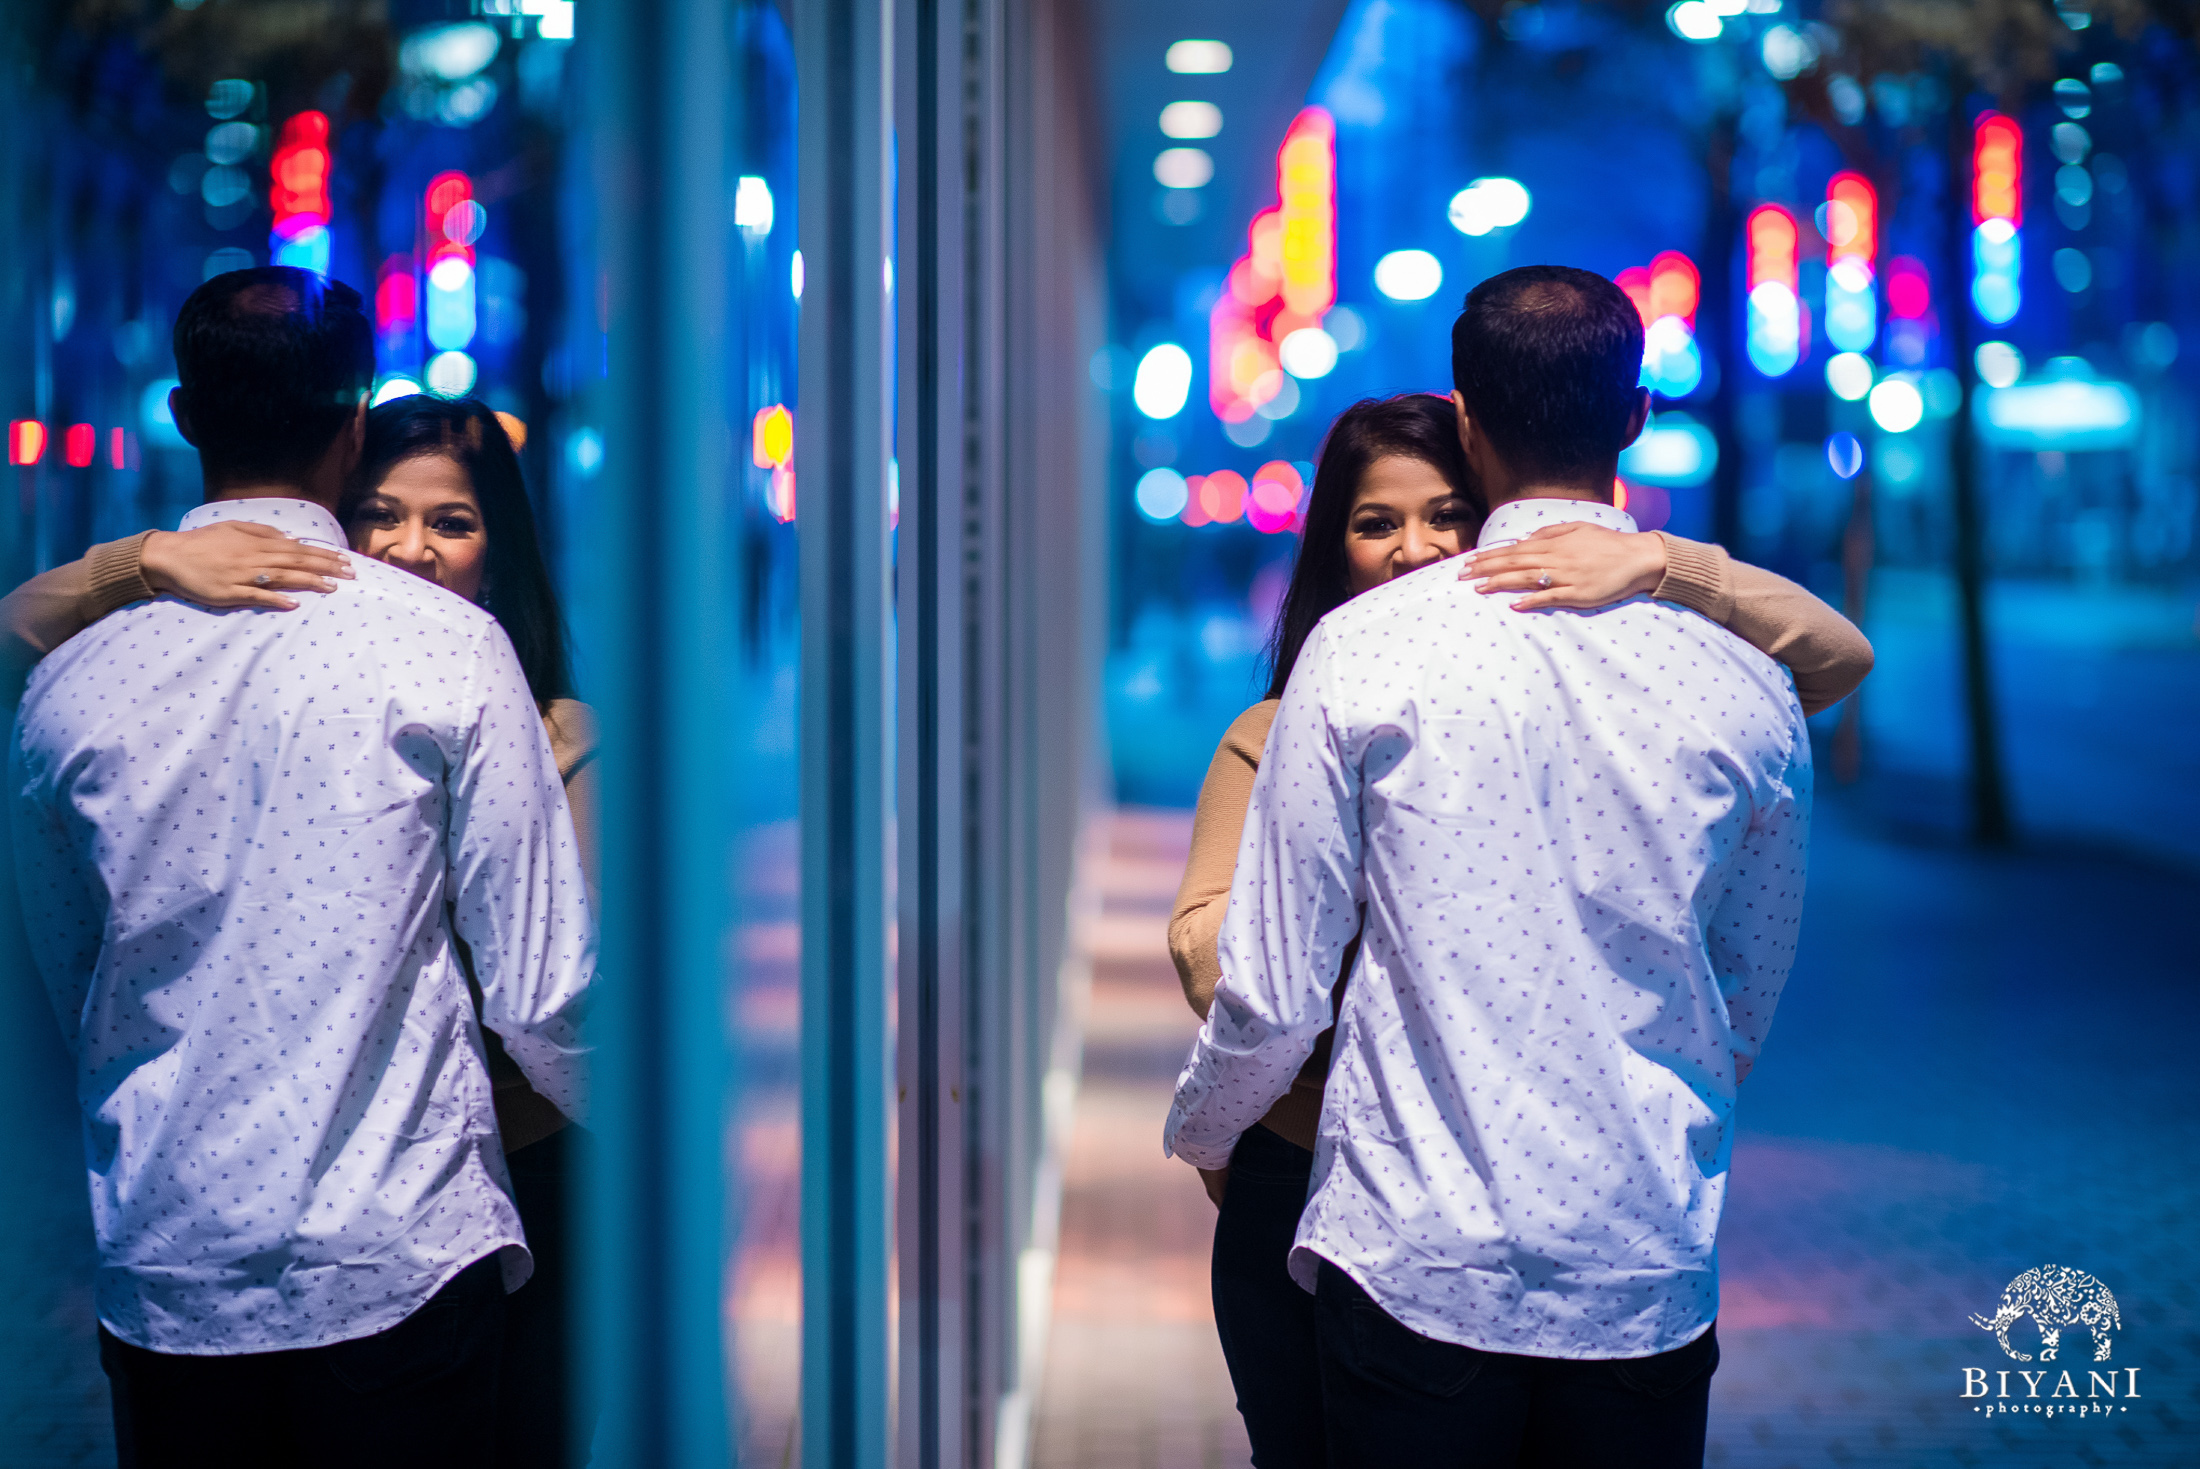 couple holding each other during the night time with bright city lights surrounding them